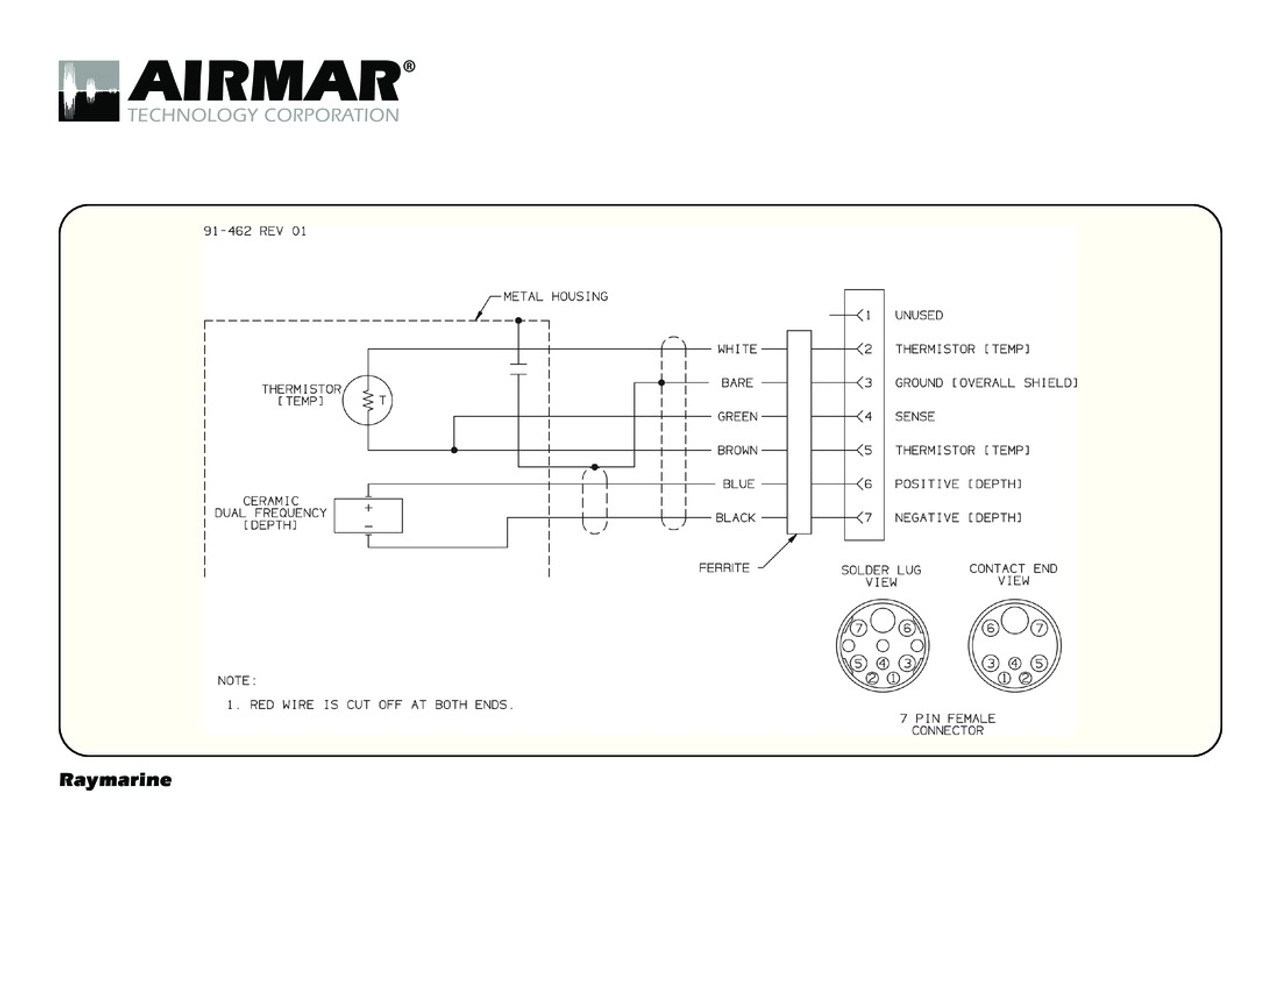 medium resolution of lowrance nmea 0183 wiring diagram free download wiring diagram view lowrance nmea 0183 wiring pictures to